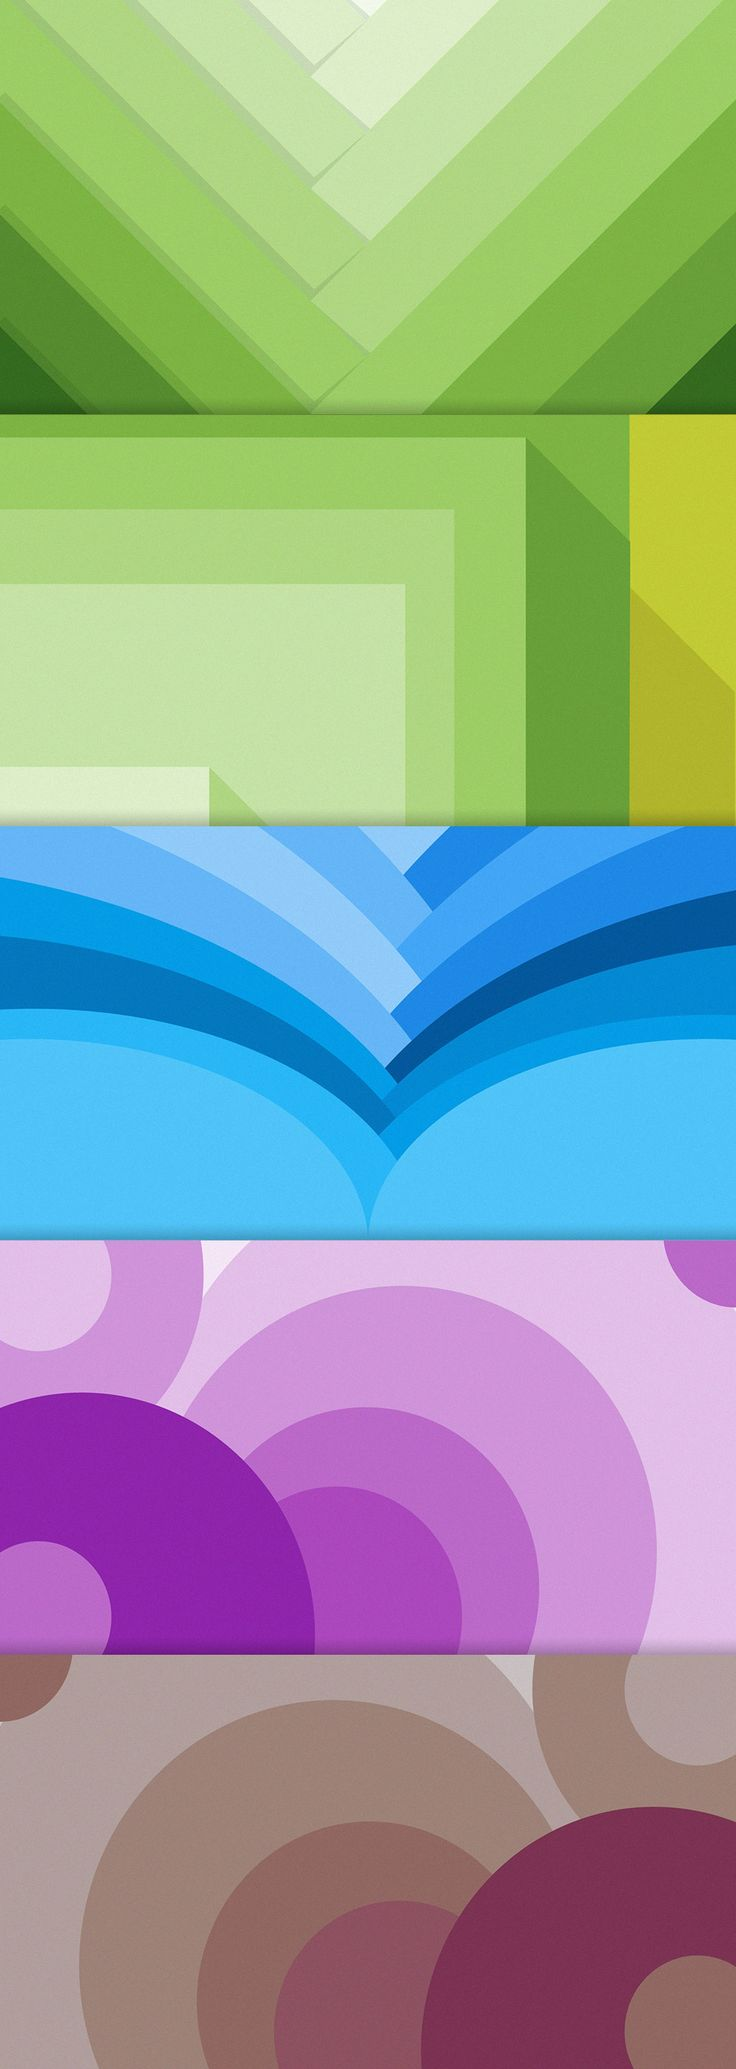 A fresh Set of Material Design Backgrounds available for free in high resolution. Feel free to download and share.